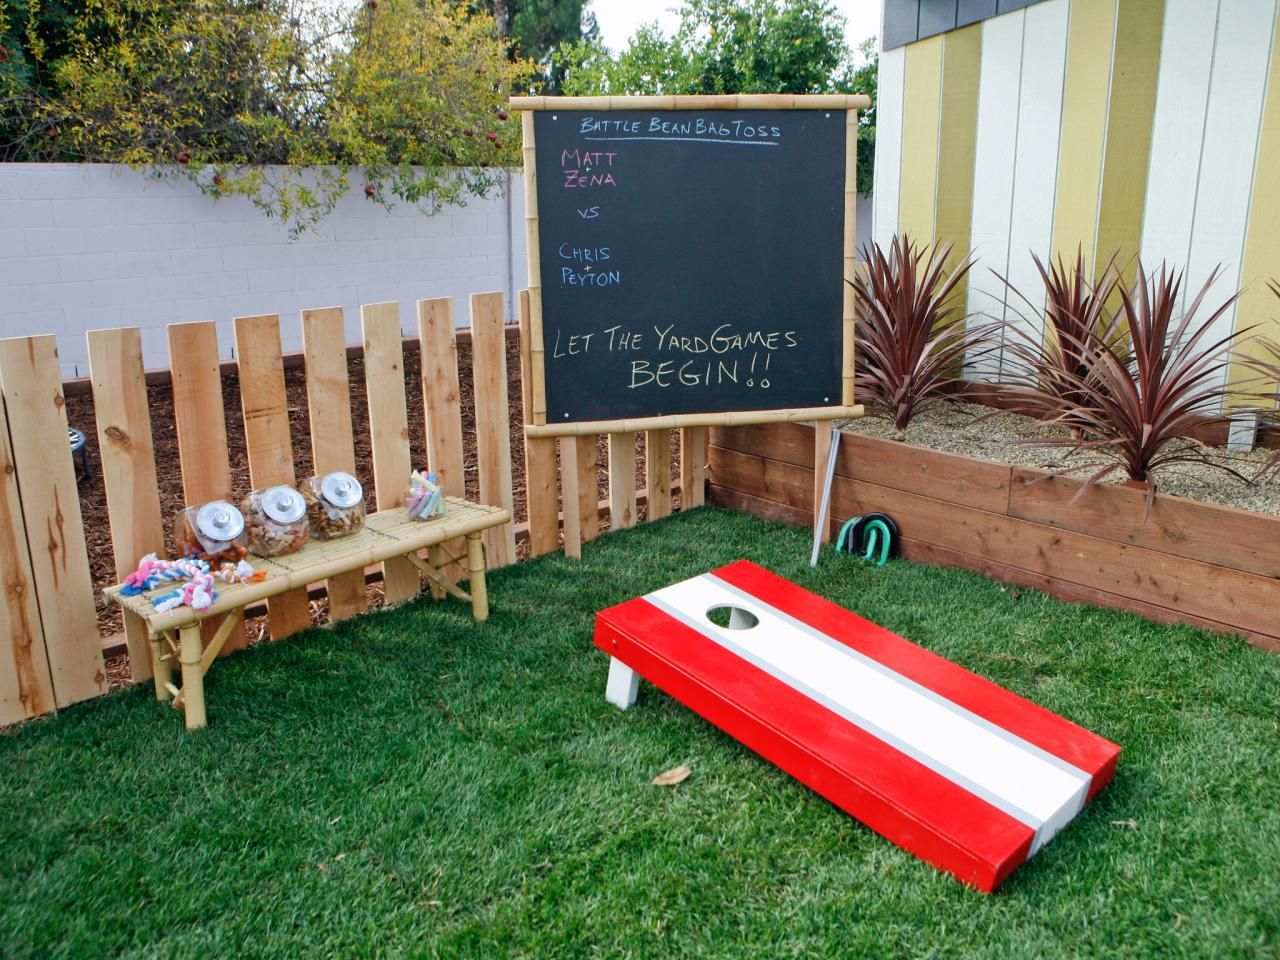 Family-Friendly Outdoor Spaces   Yard games, Yards and Backyard